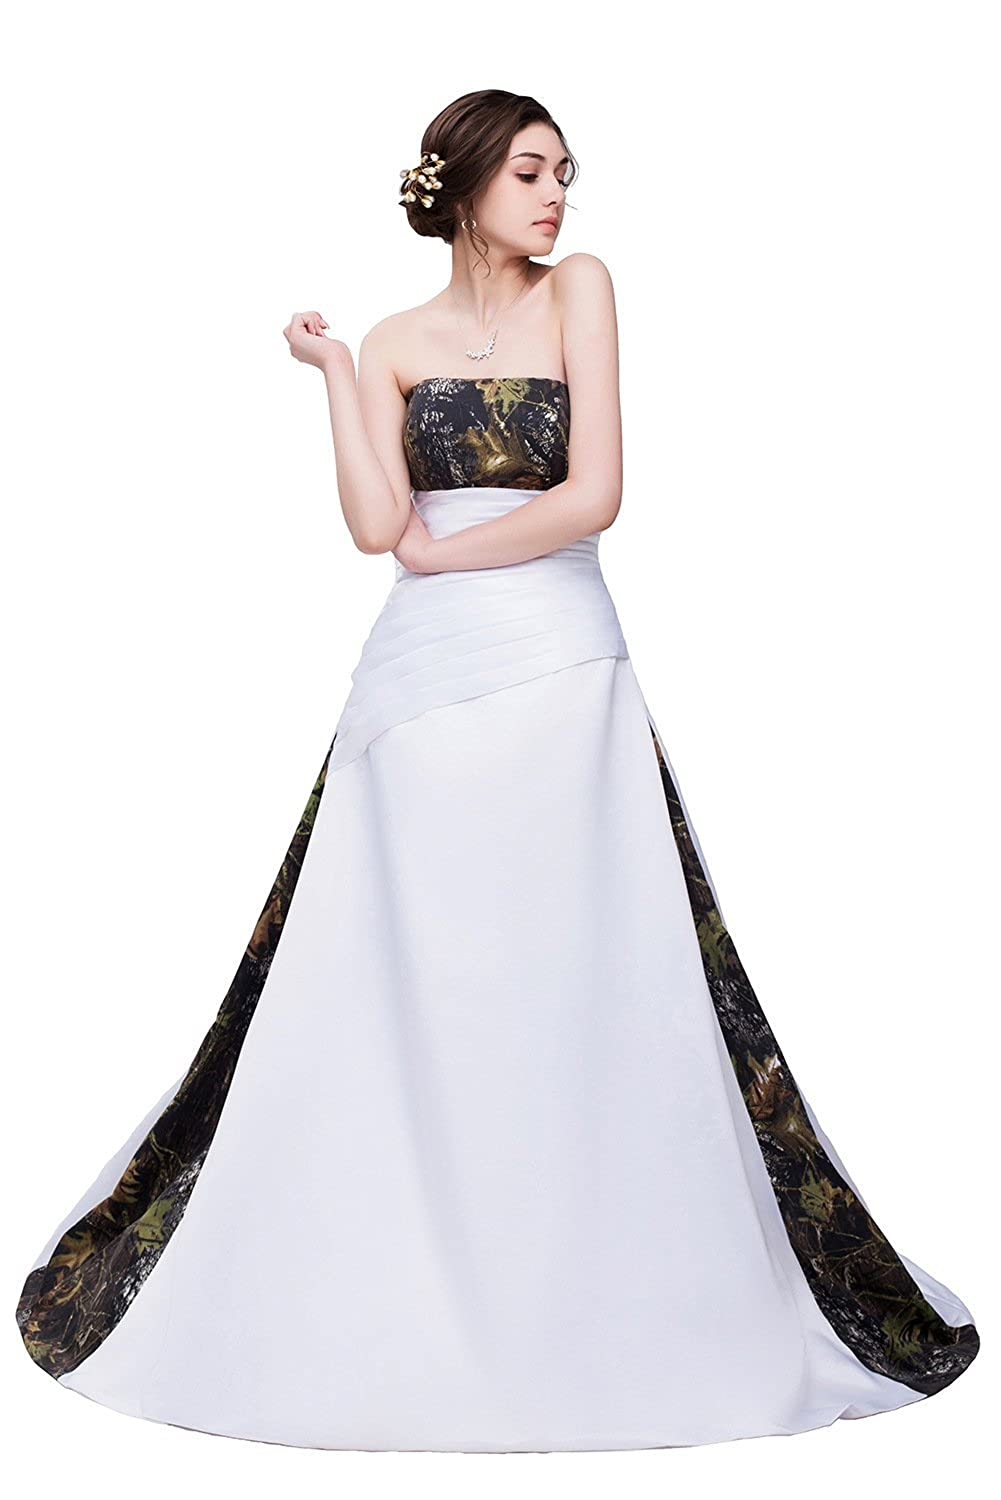 Dingzan Strapless Satin Camo Military Wedding Dresses Long Prom